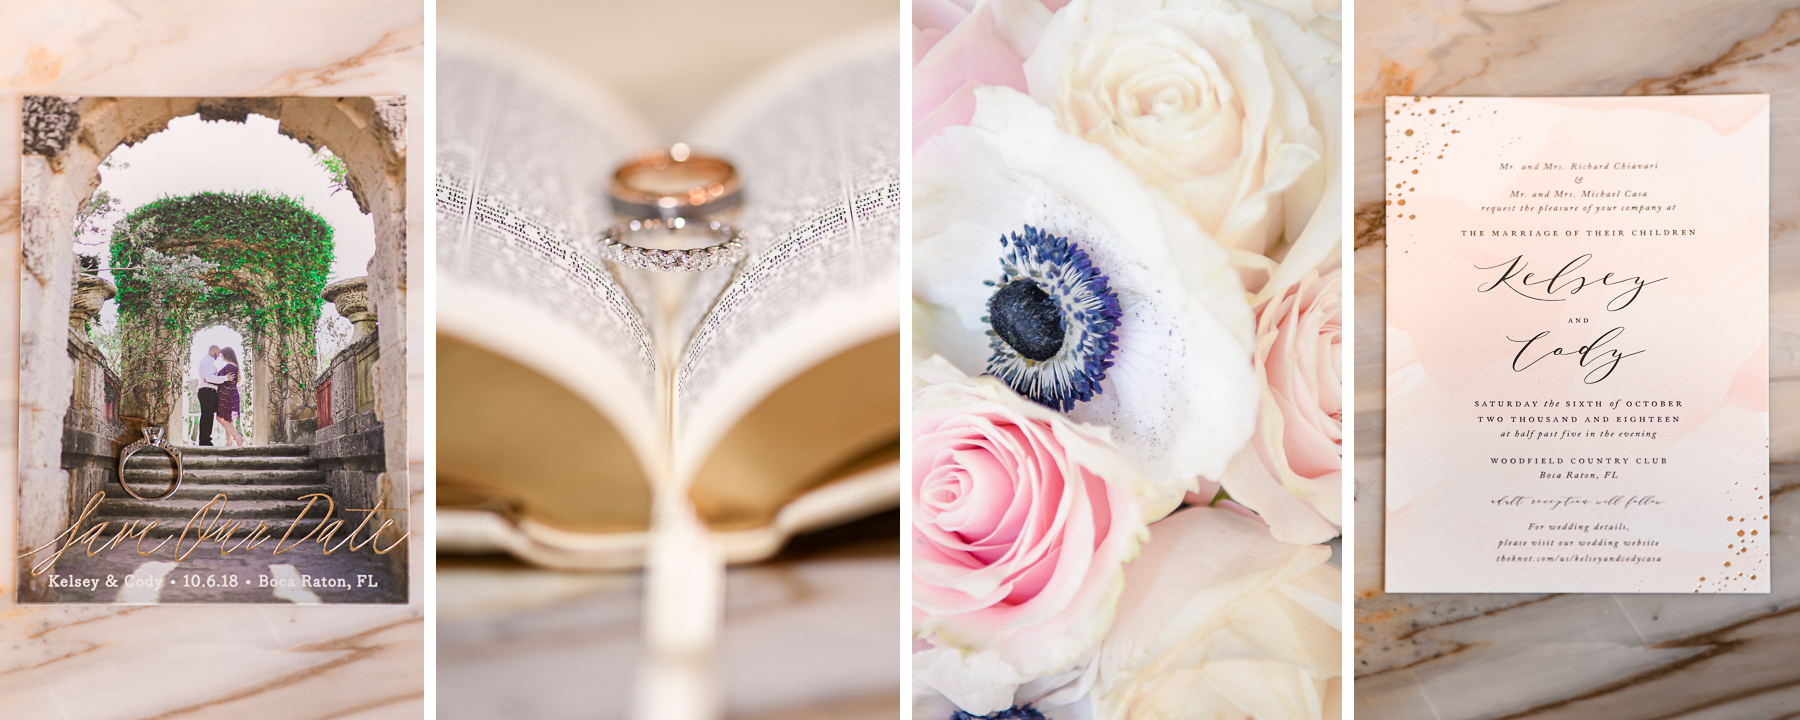 Beautiful details at Romantic Outdoors Wedding at Woodfield Country Club in Boca Raton, Florida